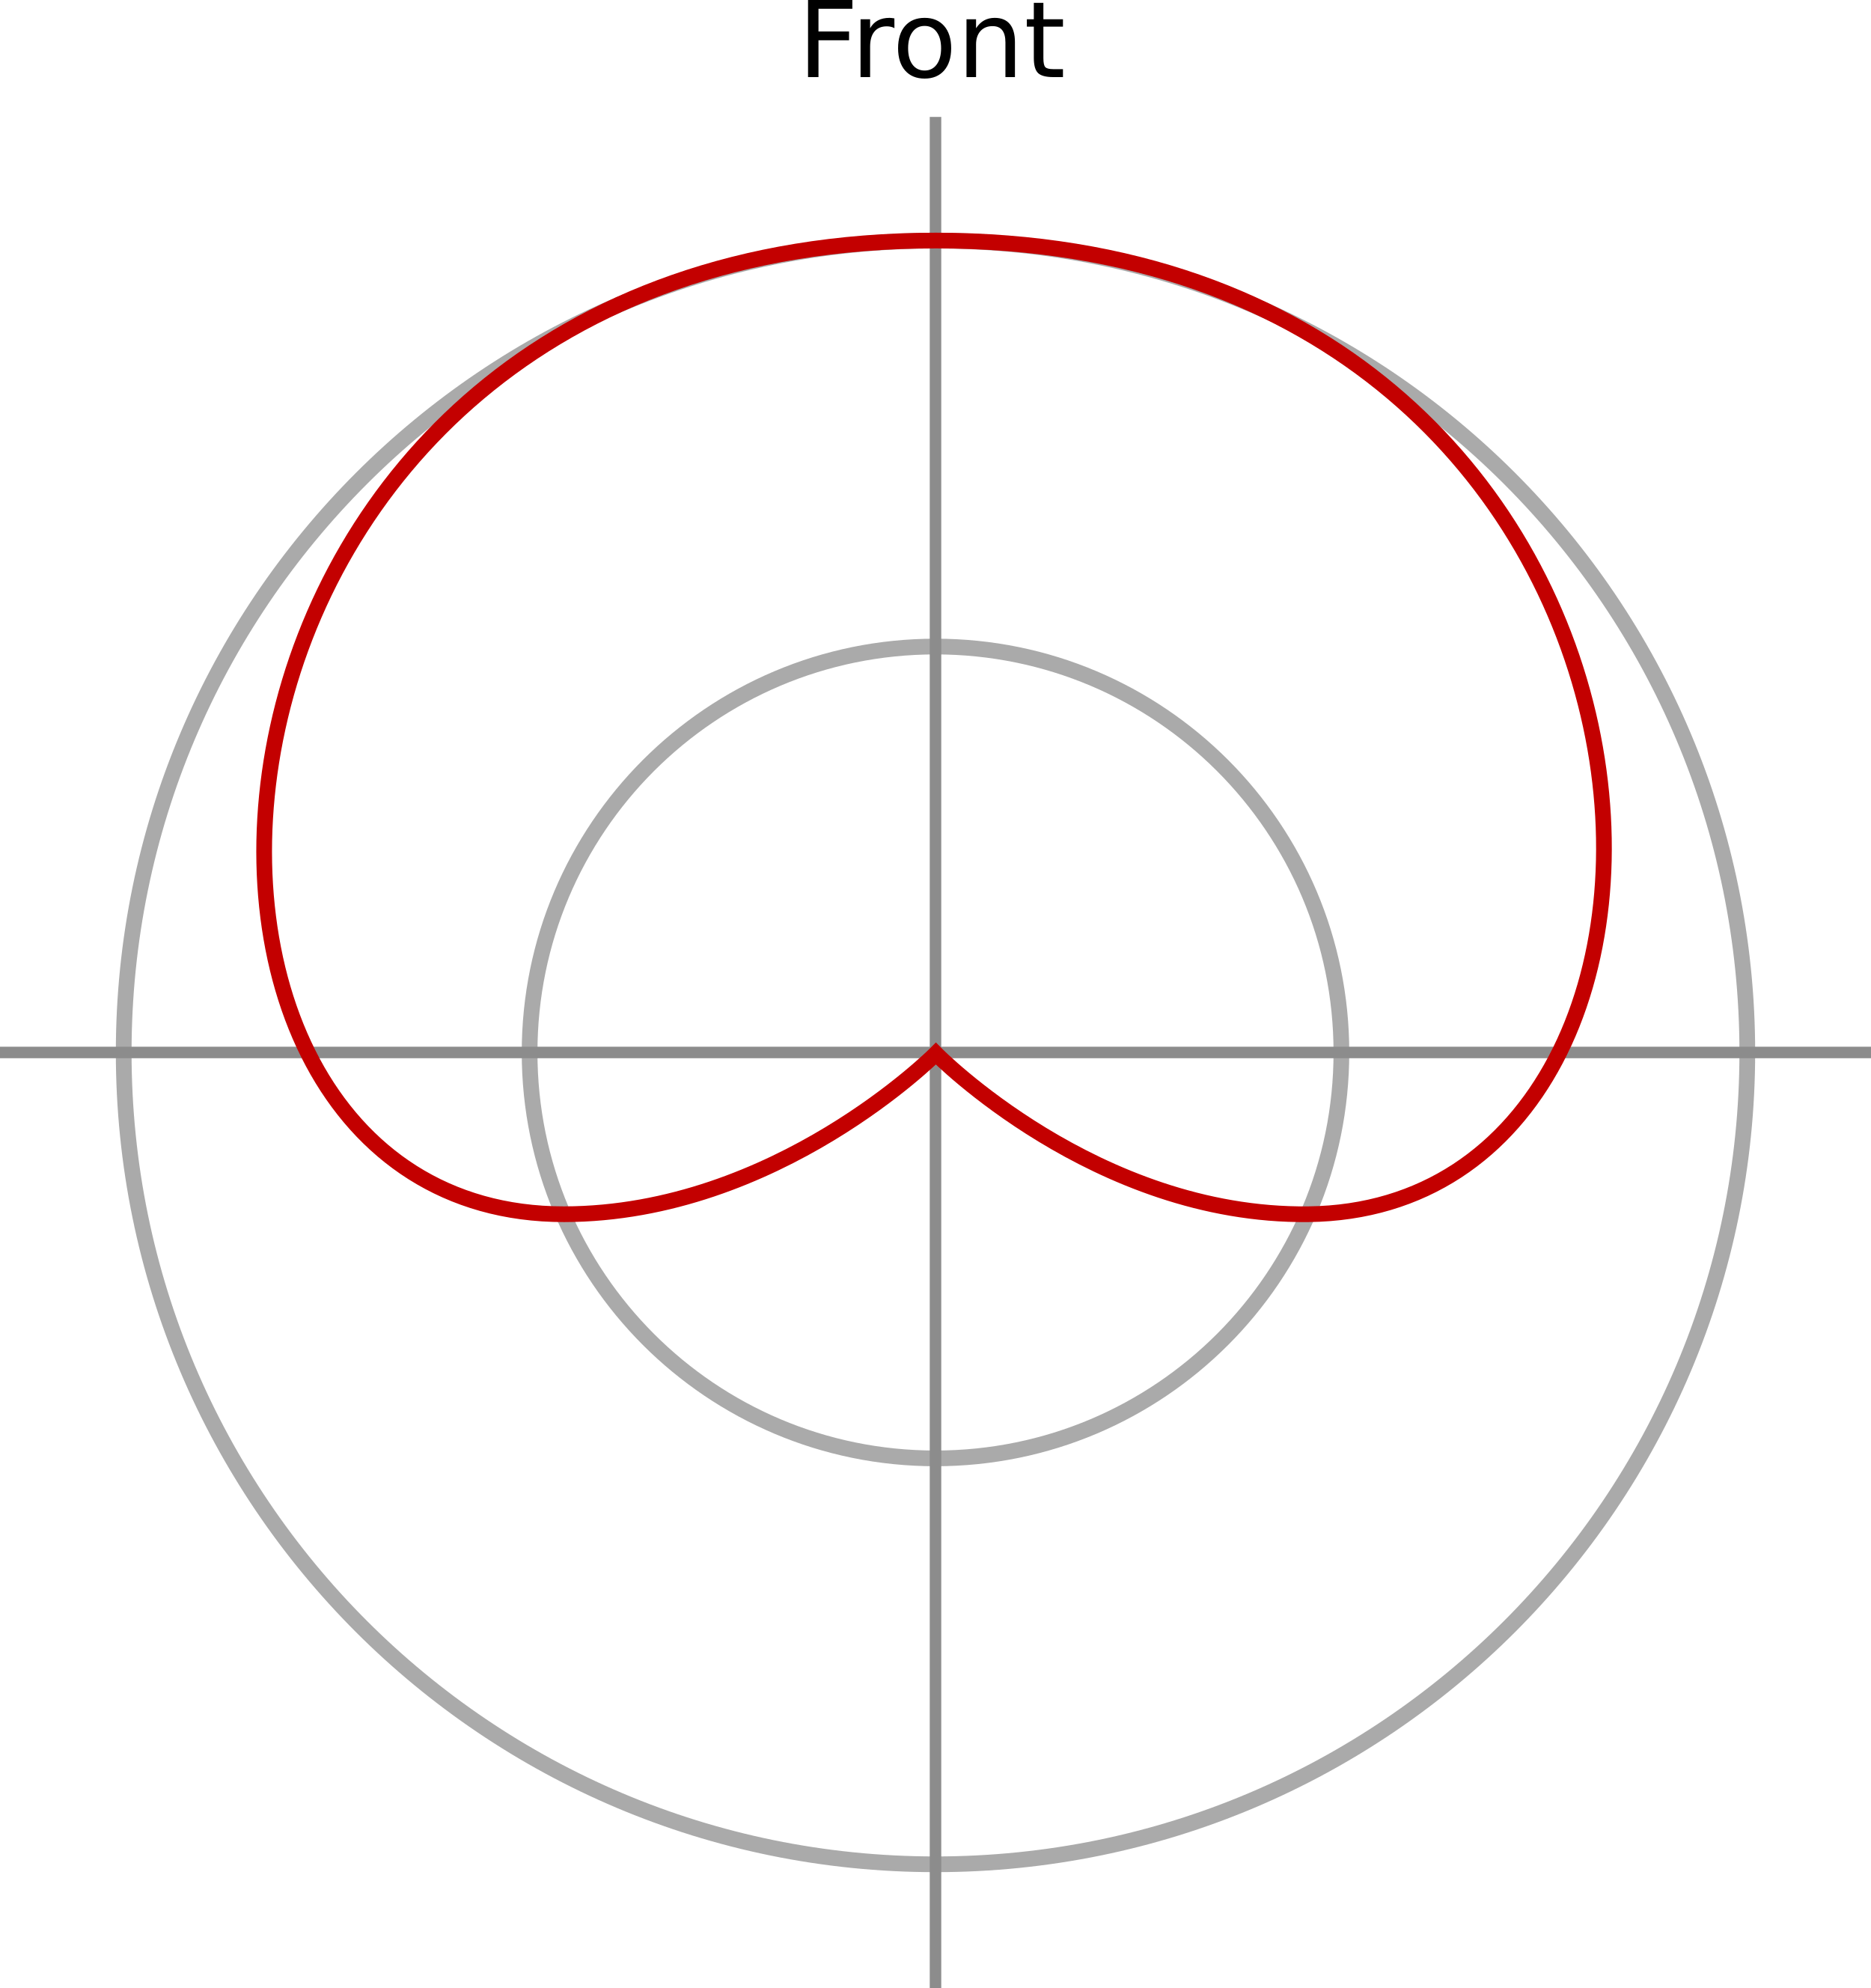 The directional pick up pattern of a cardioid microphone. When viewed on as a frequency response graph shows a heart shaped pattern, most sensitive to the front, relatively insensitive to the sides, and almost totally insensitive from the back.  In technical specifications, microphone directional response is shown by a pattern graph. A circular graph with zero degrees (the front of the mic) at the top, and a number of concentric circles indicating percentage of response in that direction. The outermost circle represents 100%